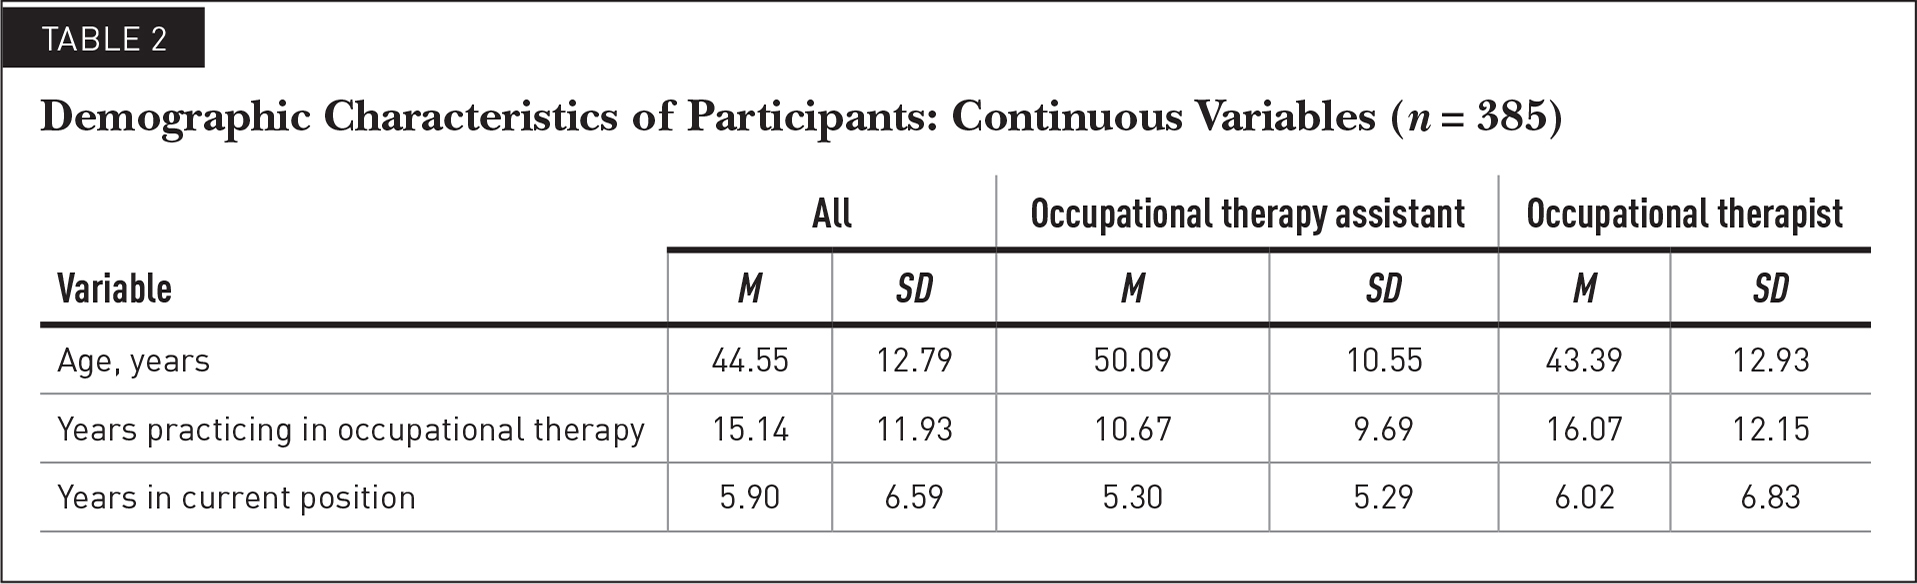 Demographic Characteristics of Participants: Continuous Variables (n = 385)